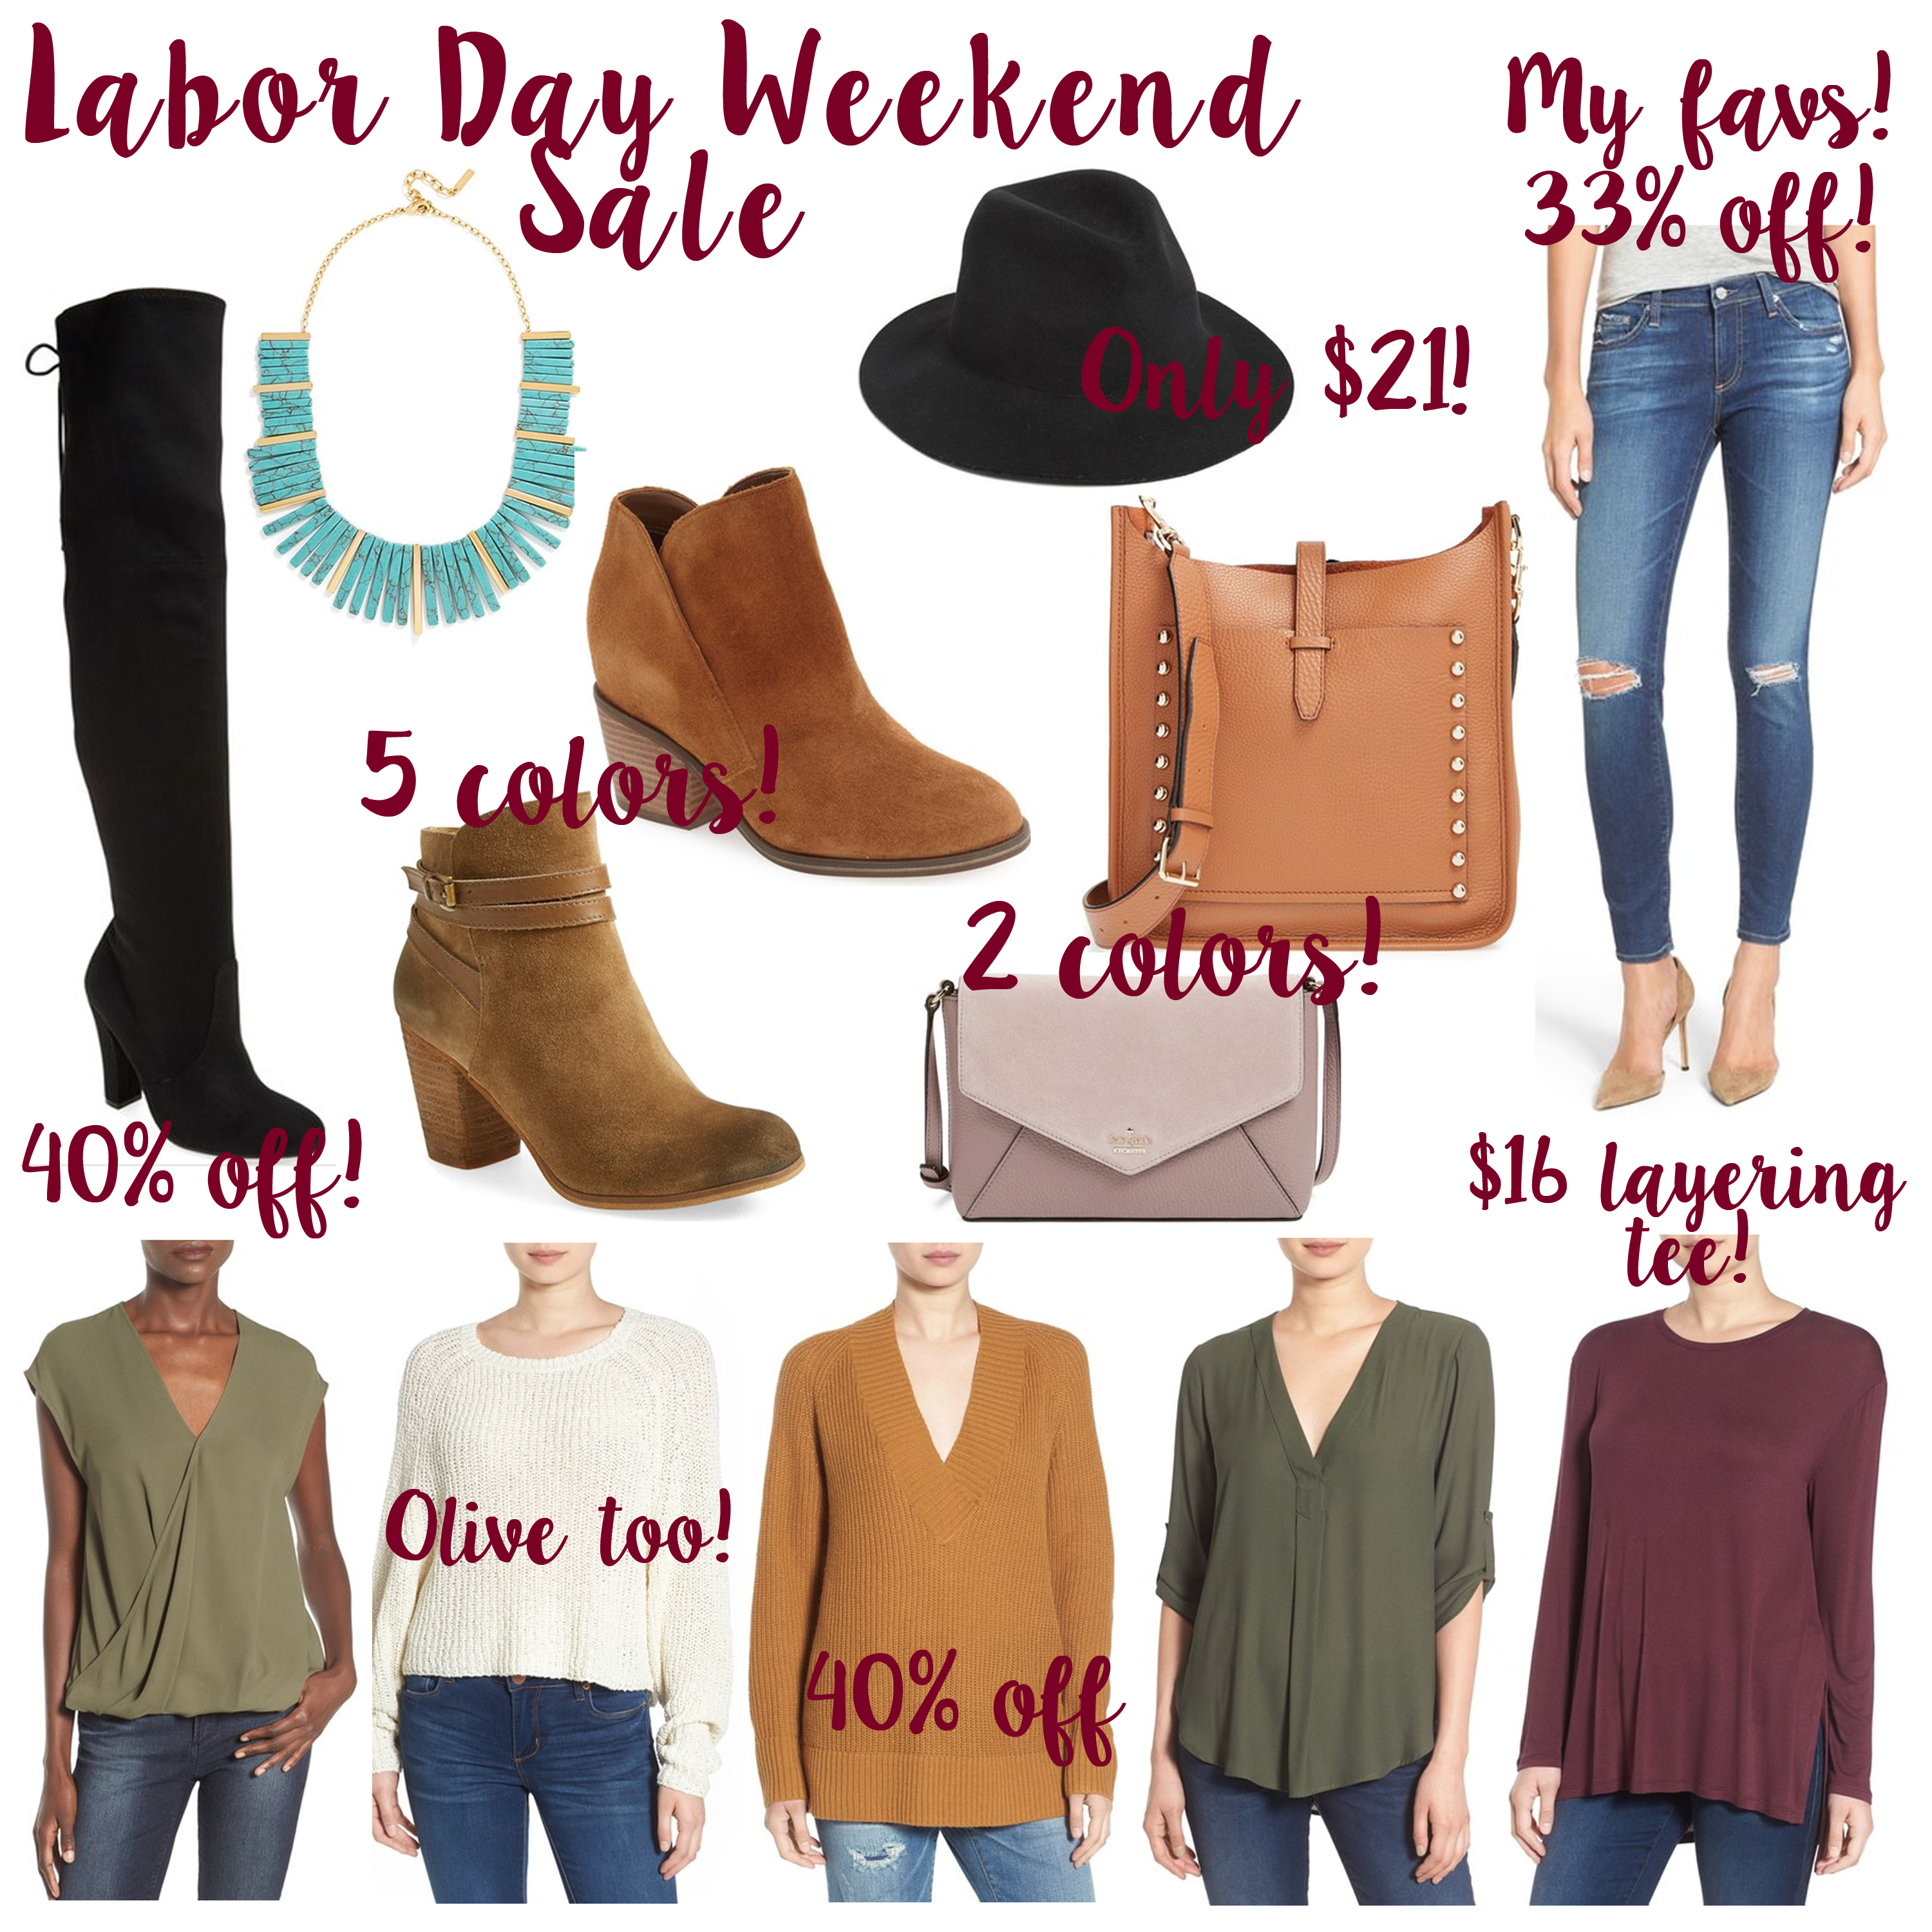 LDW labor day weekend sales and deals angela lanter hello gorgeous